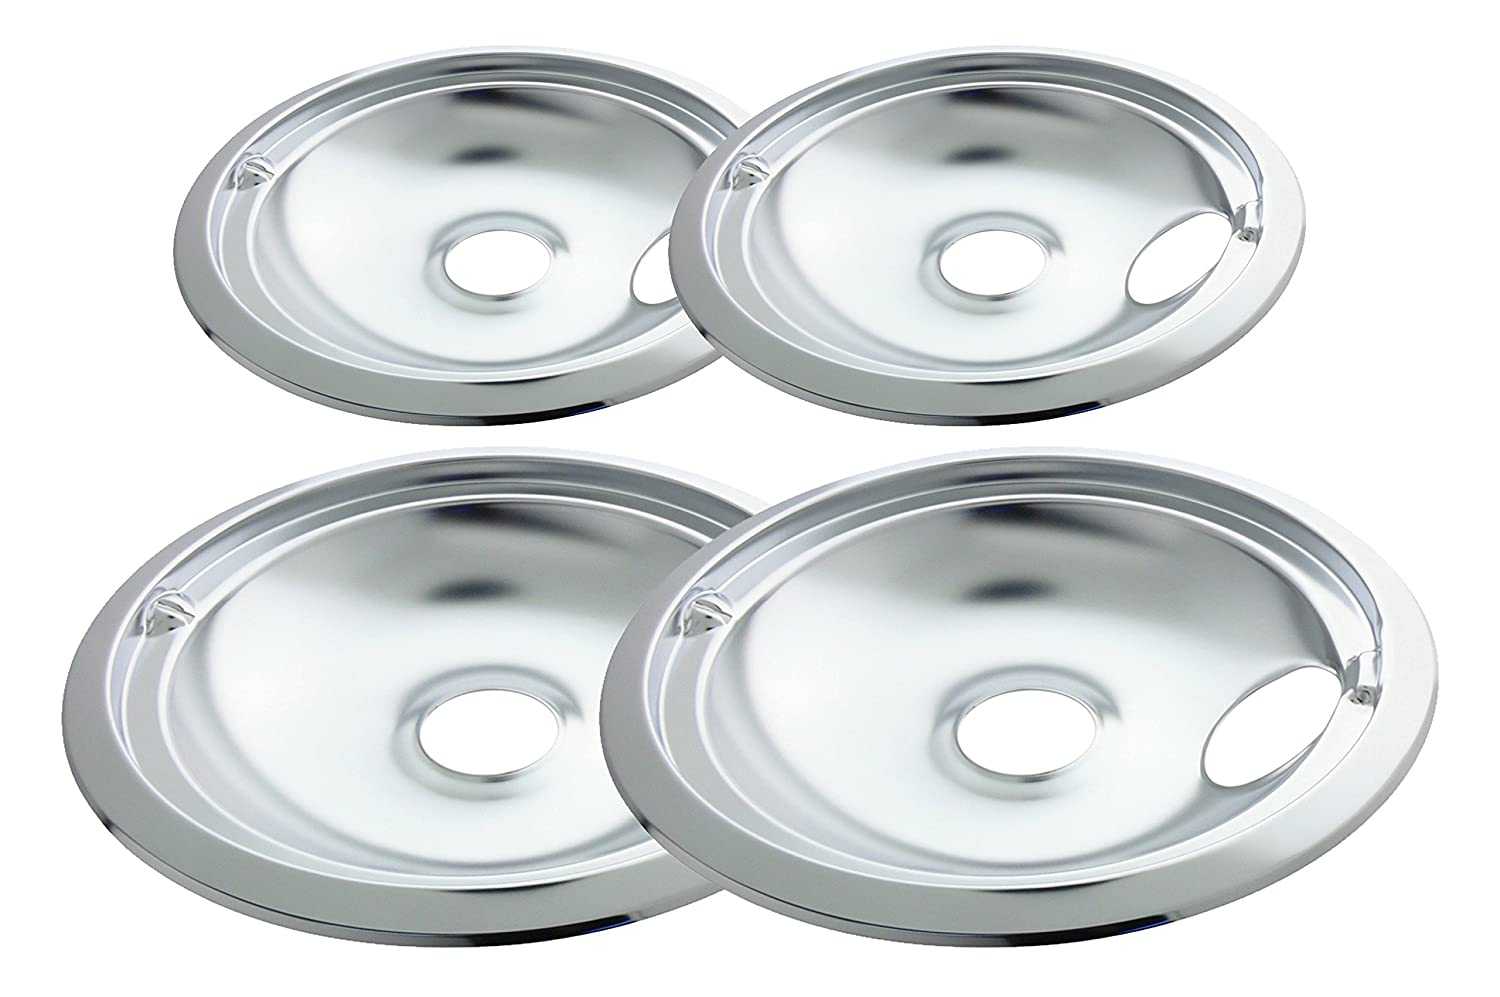 Range Kleen 11920-4X GE Drip Pans Containing 2 Units each 119A, 120A, Chrome